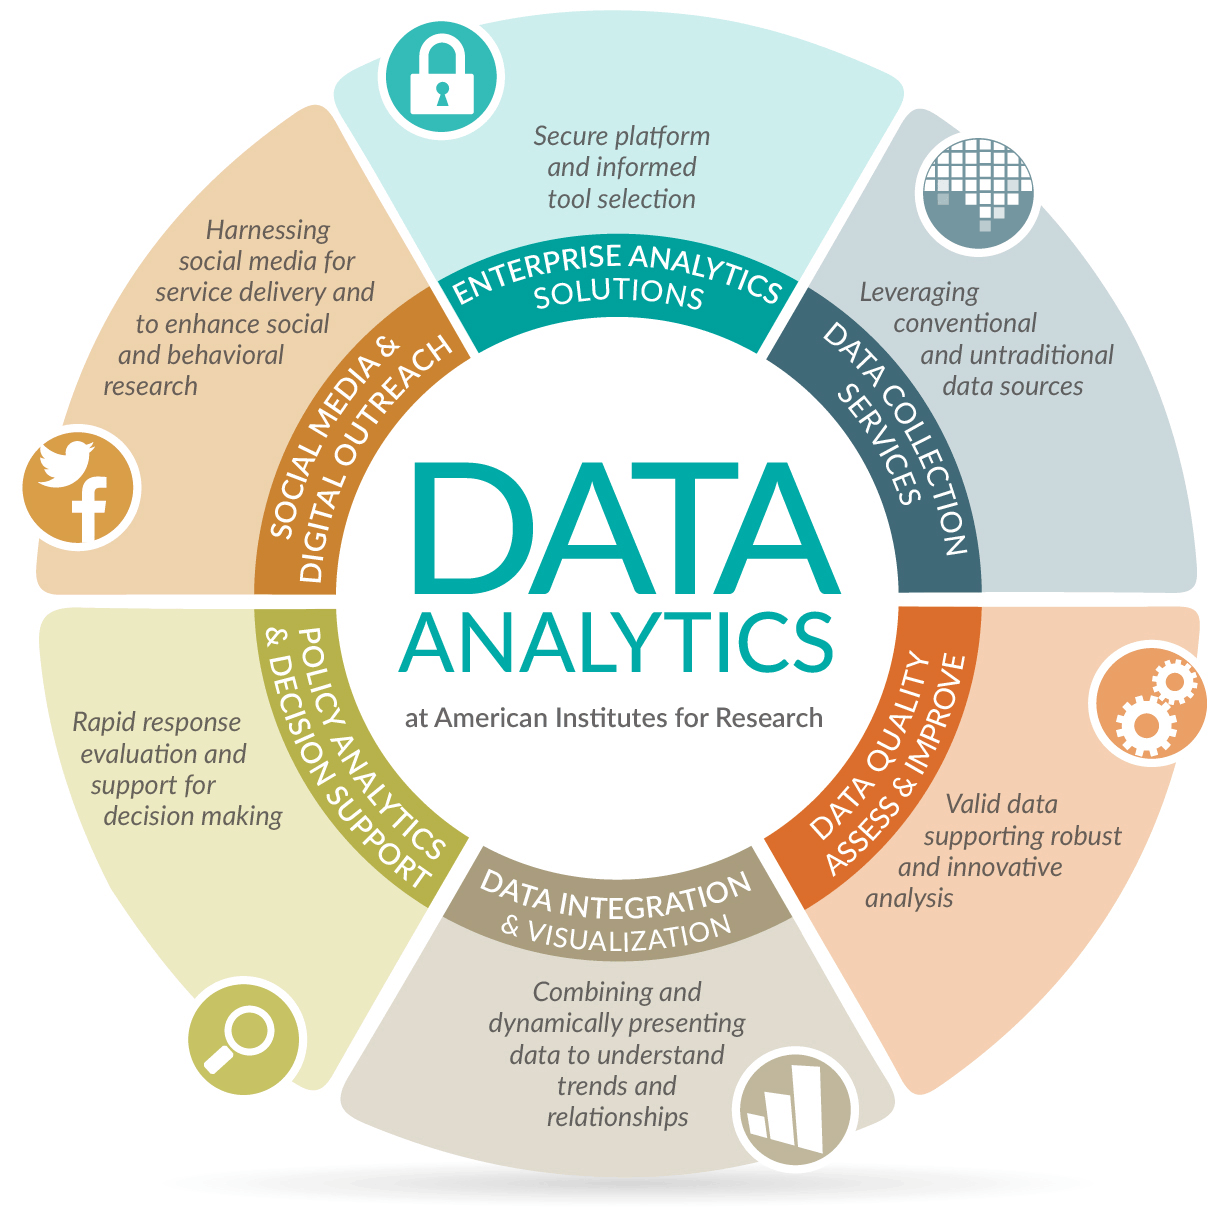 Image of Data Analytics